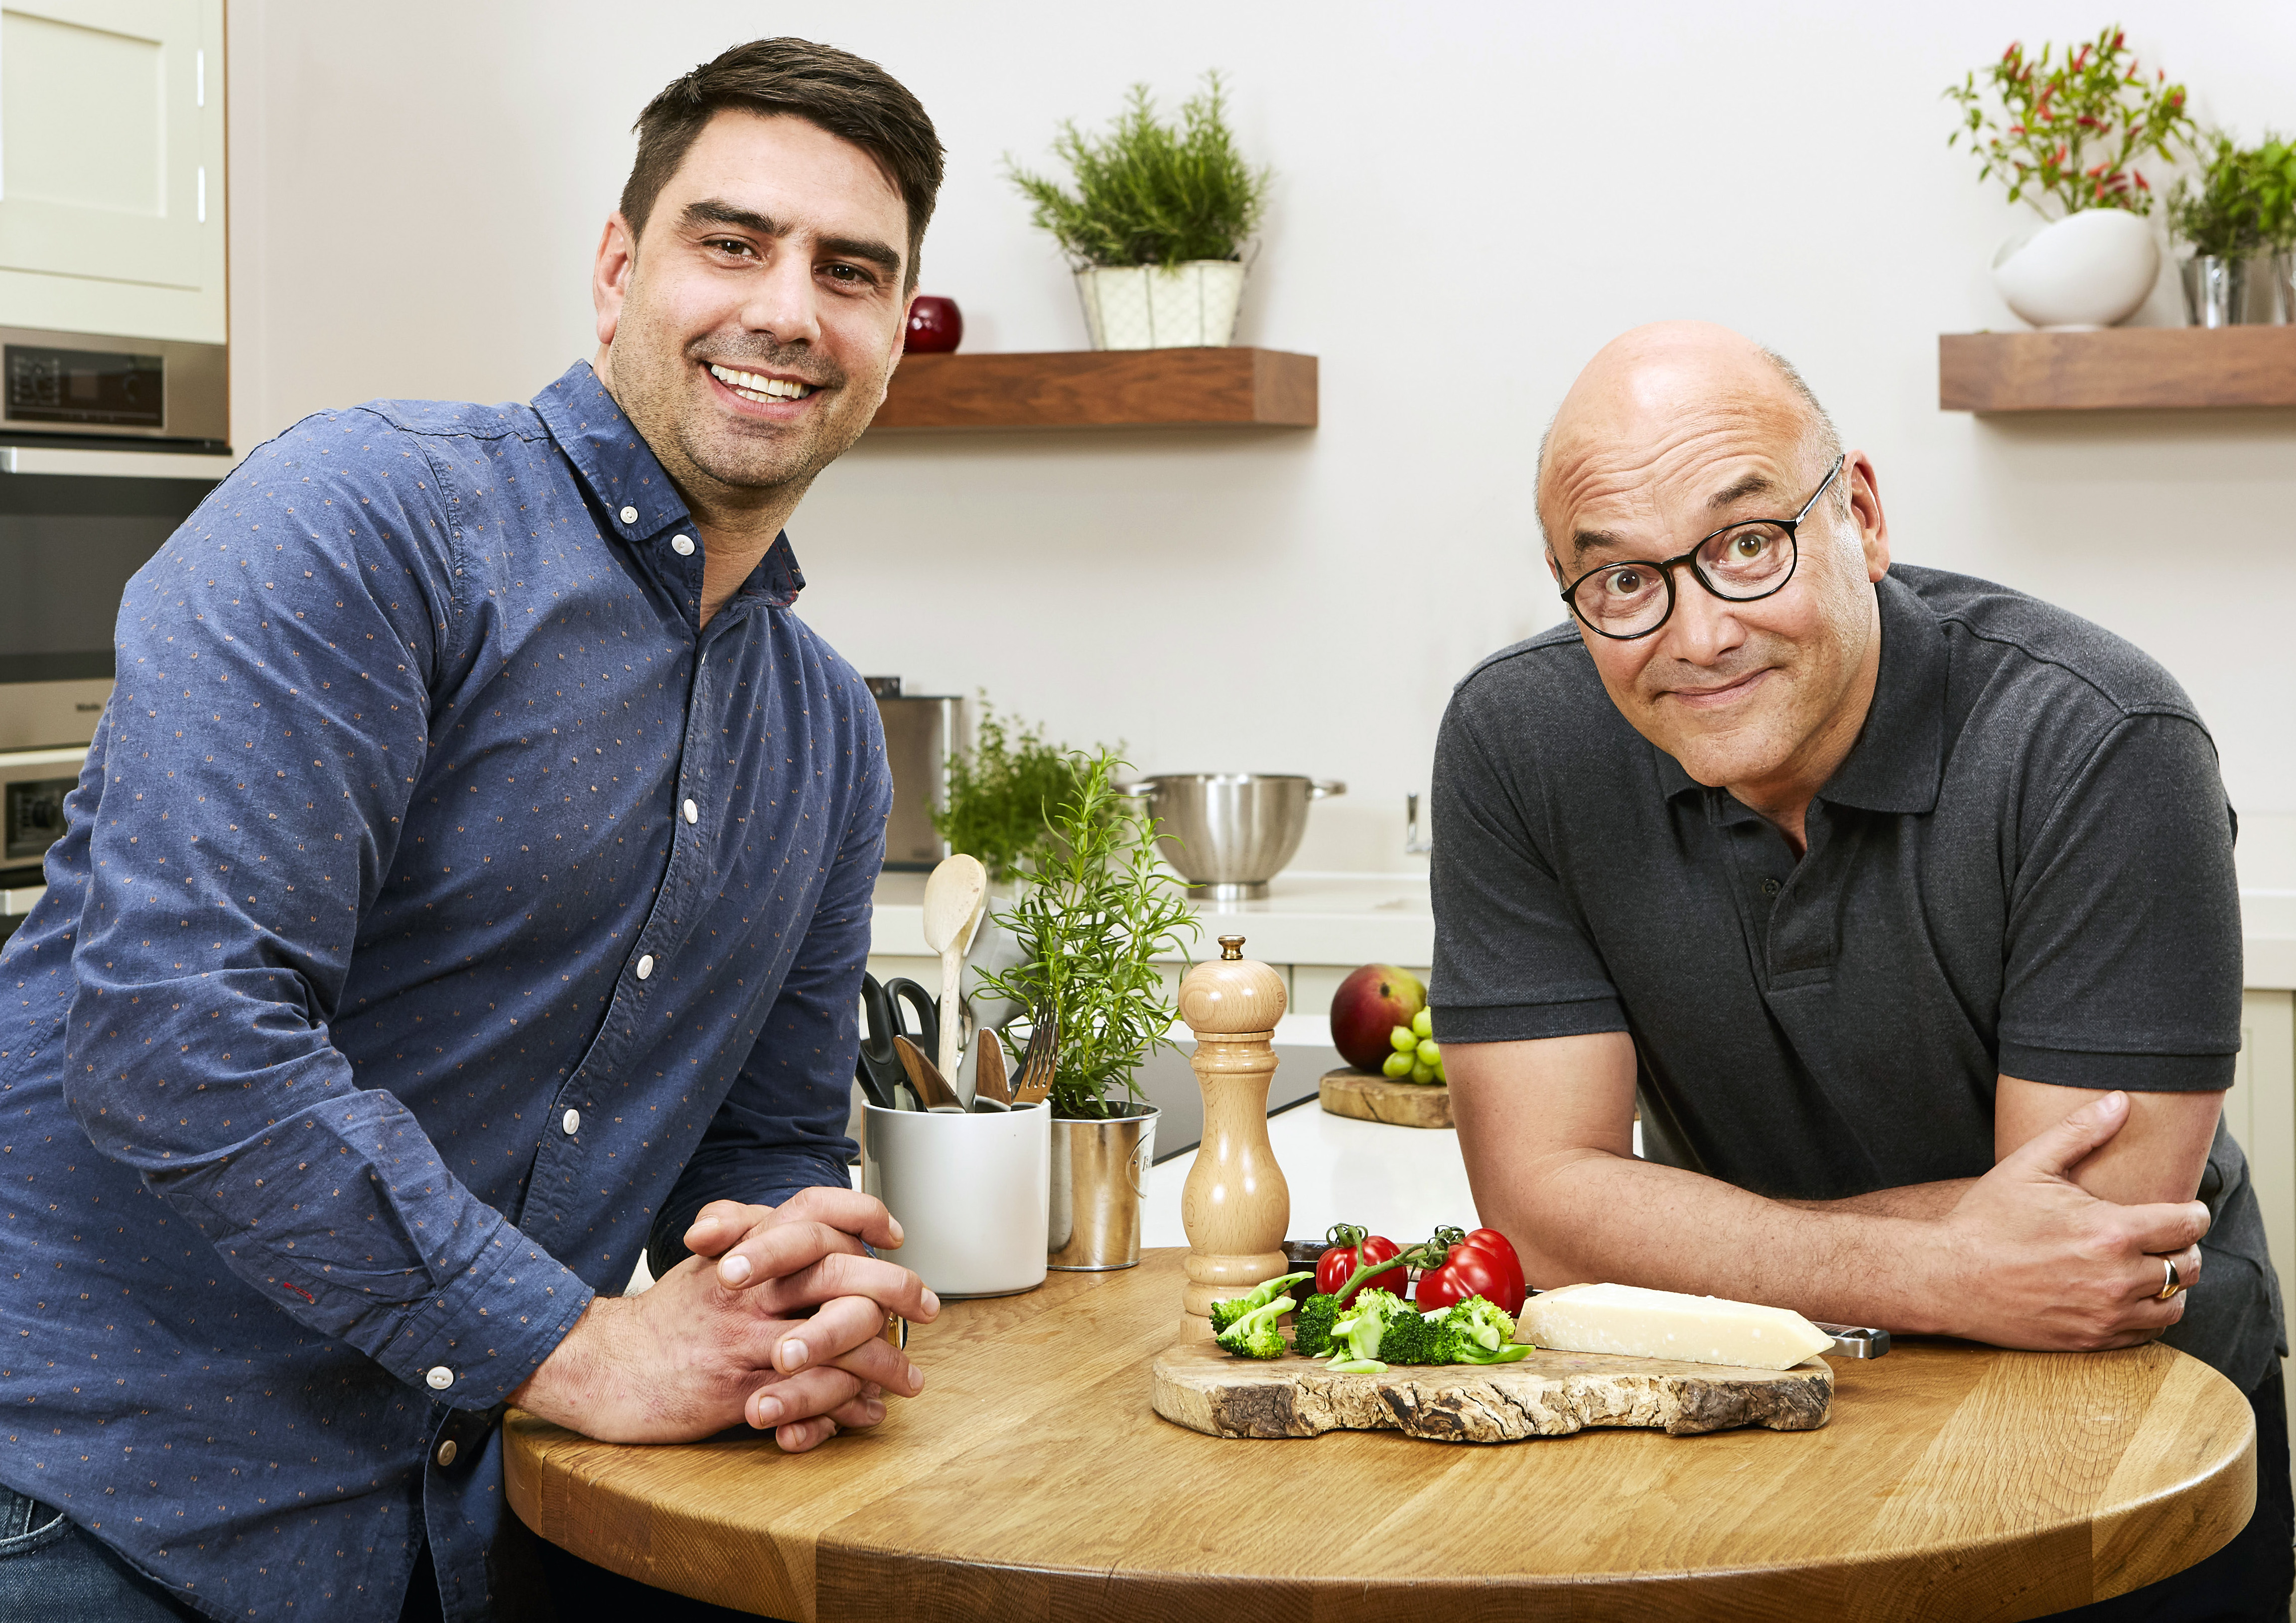 Chris Bavin and Gregg Wallace, presenters of Eat Well For Less? pose for Food and Drink PR story